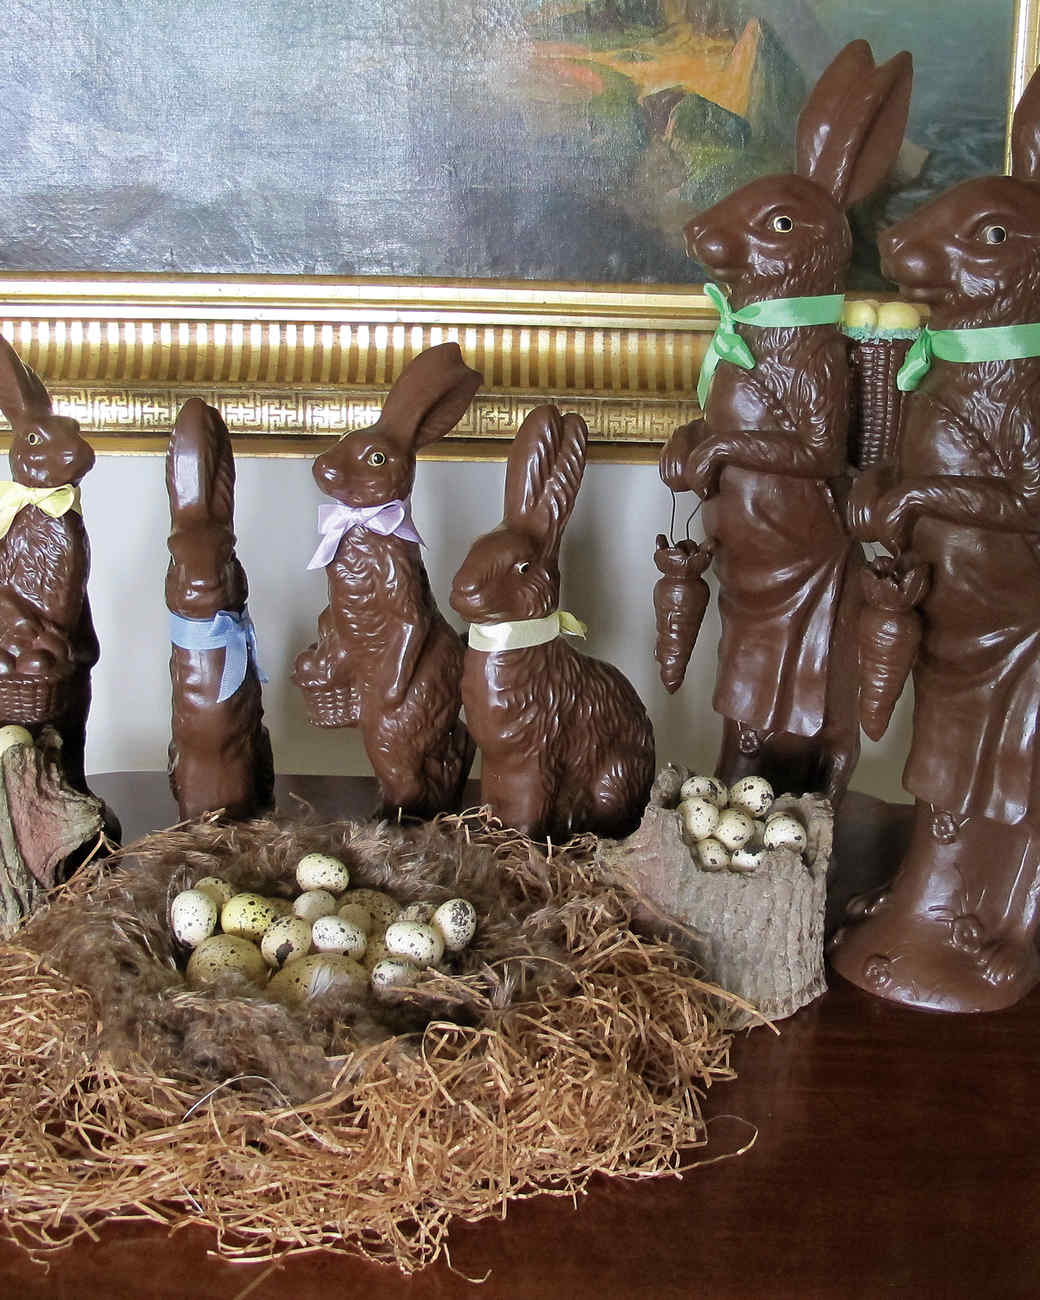 chocolate-bunnies-ms108470.jpg